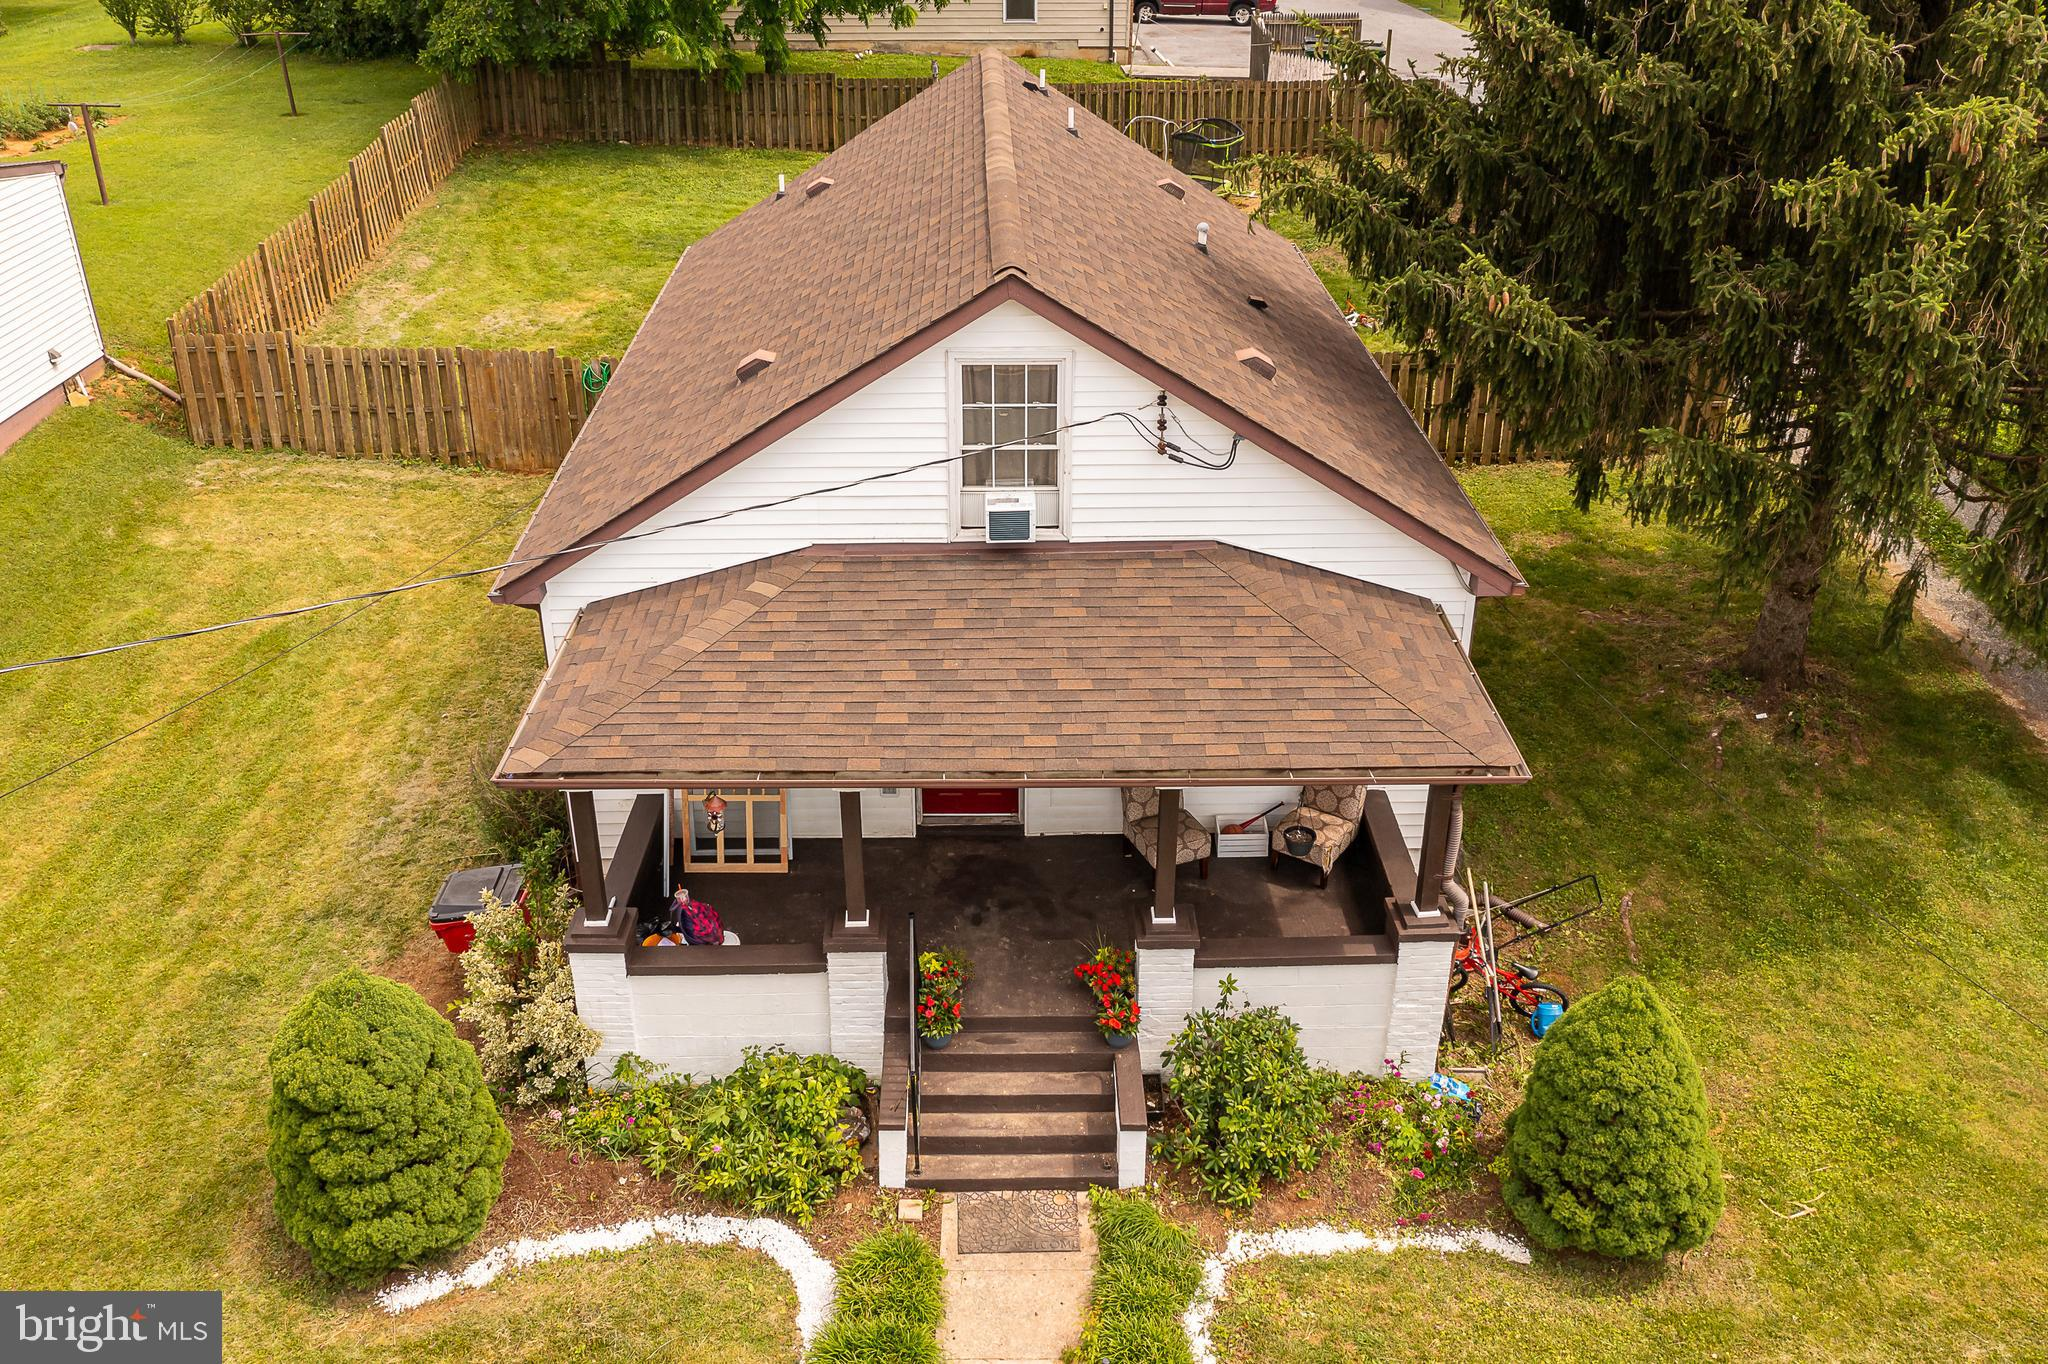 Charming 3 bedroom 2 bath craftsman bungalow just off Mildred Street across from the Ranson Communit